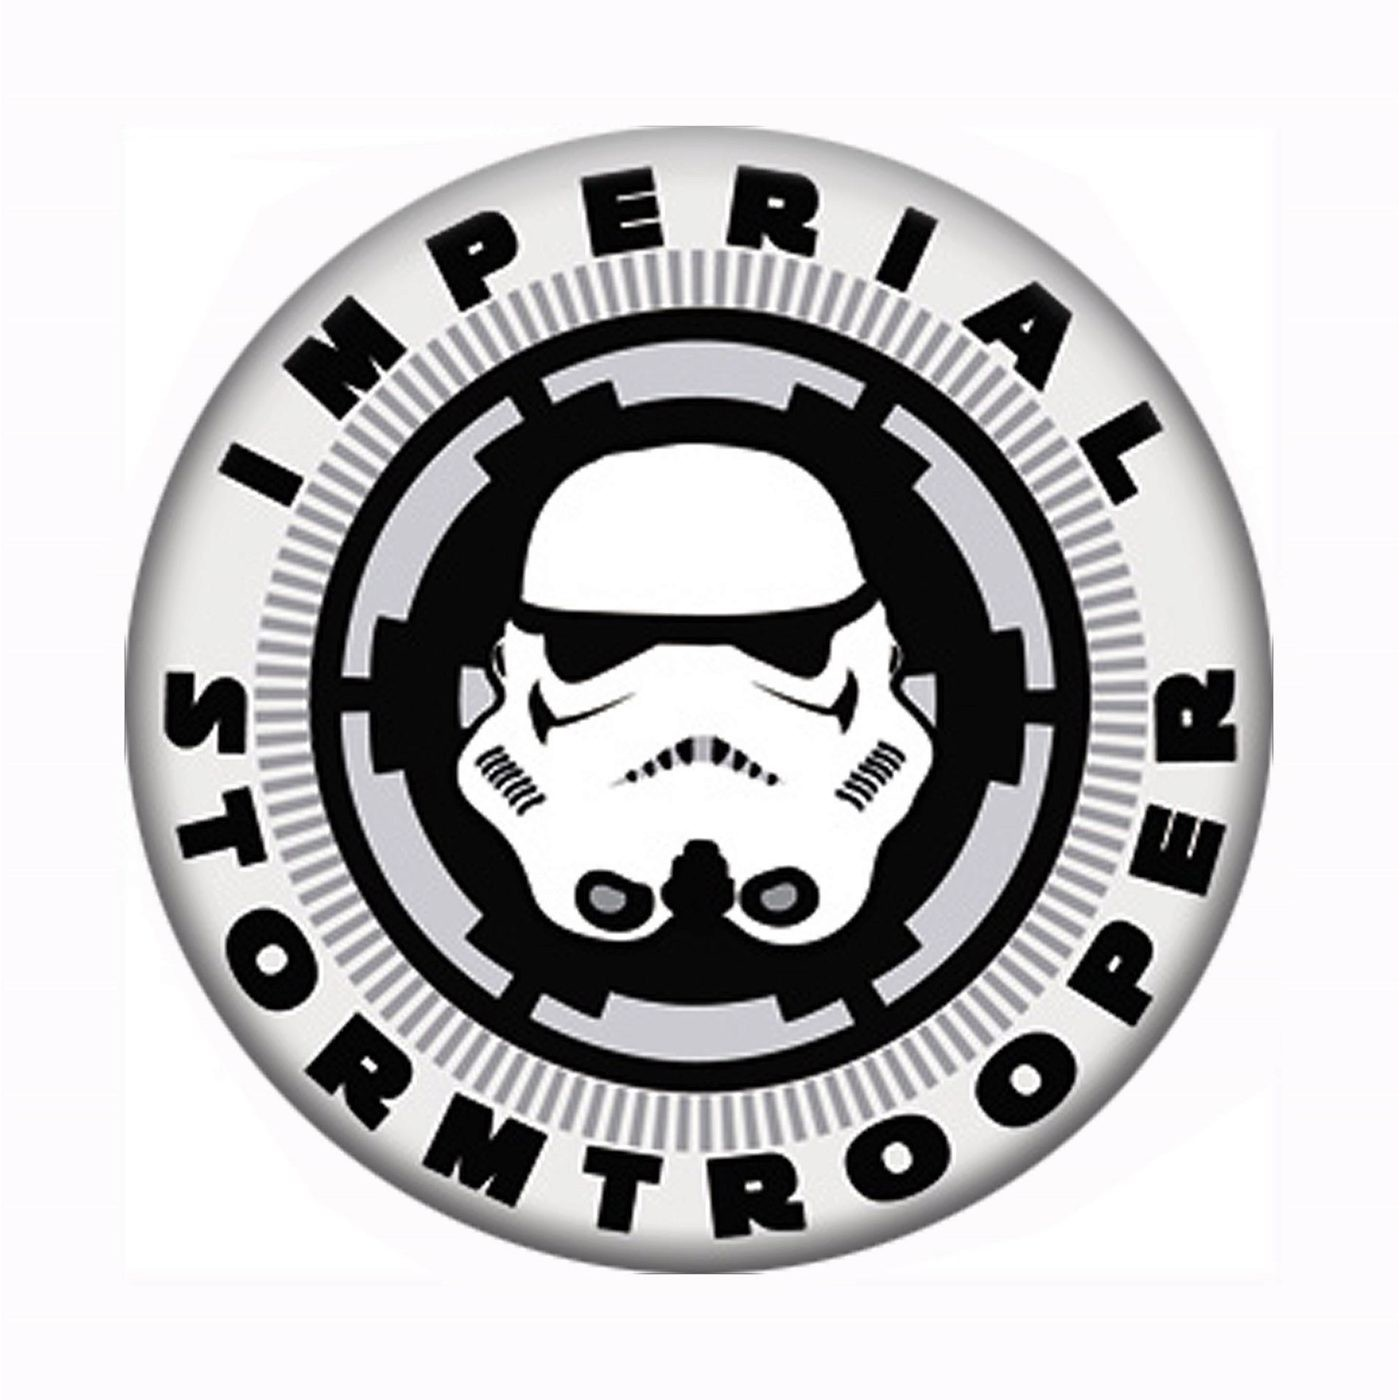 Star Wars Imperial Stormtrooper Mask and Logo Button